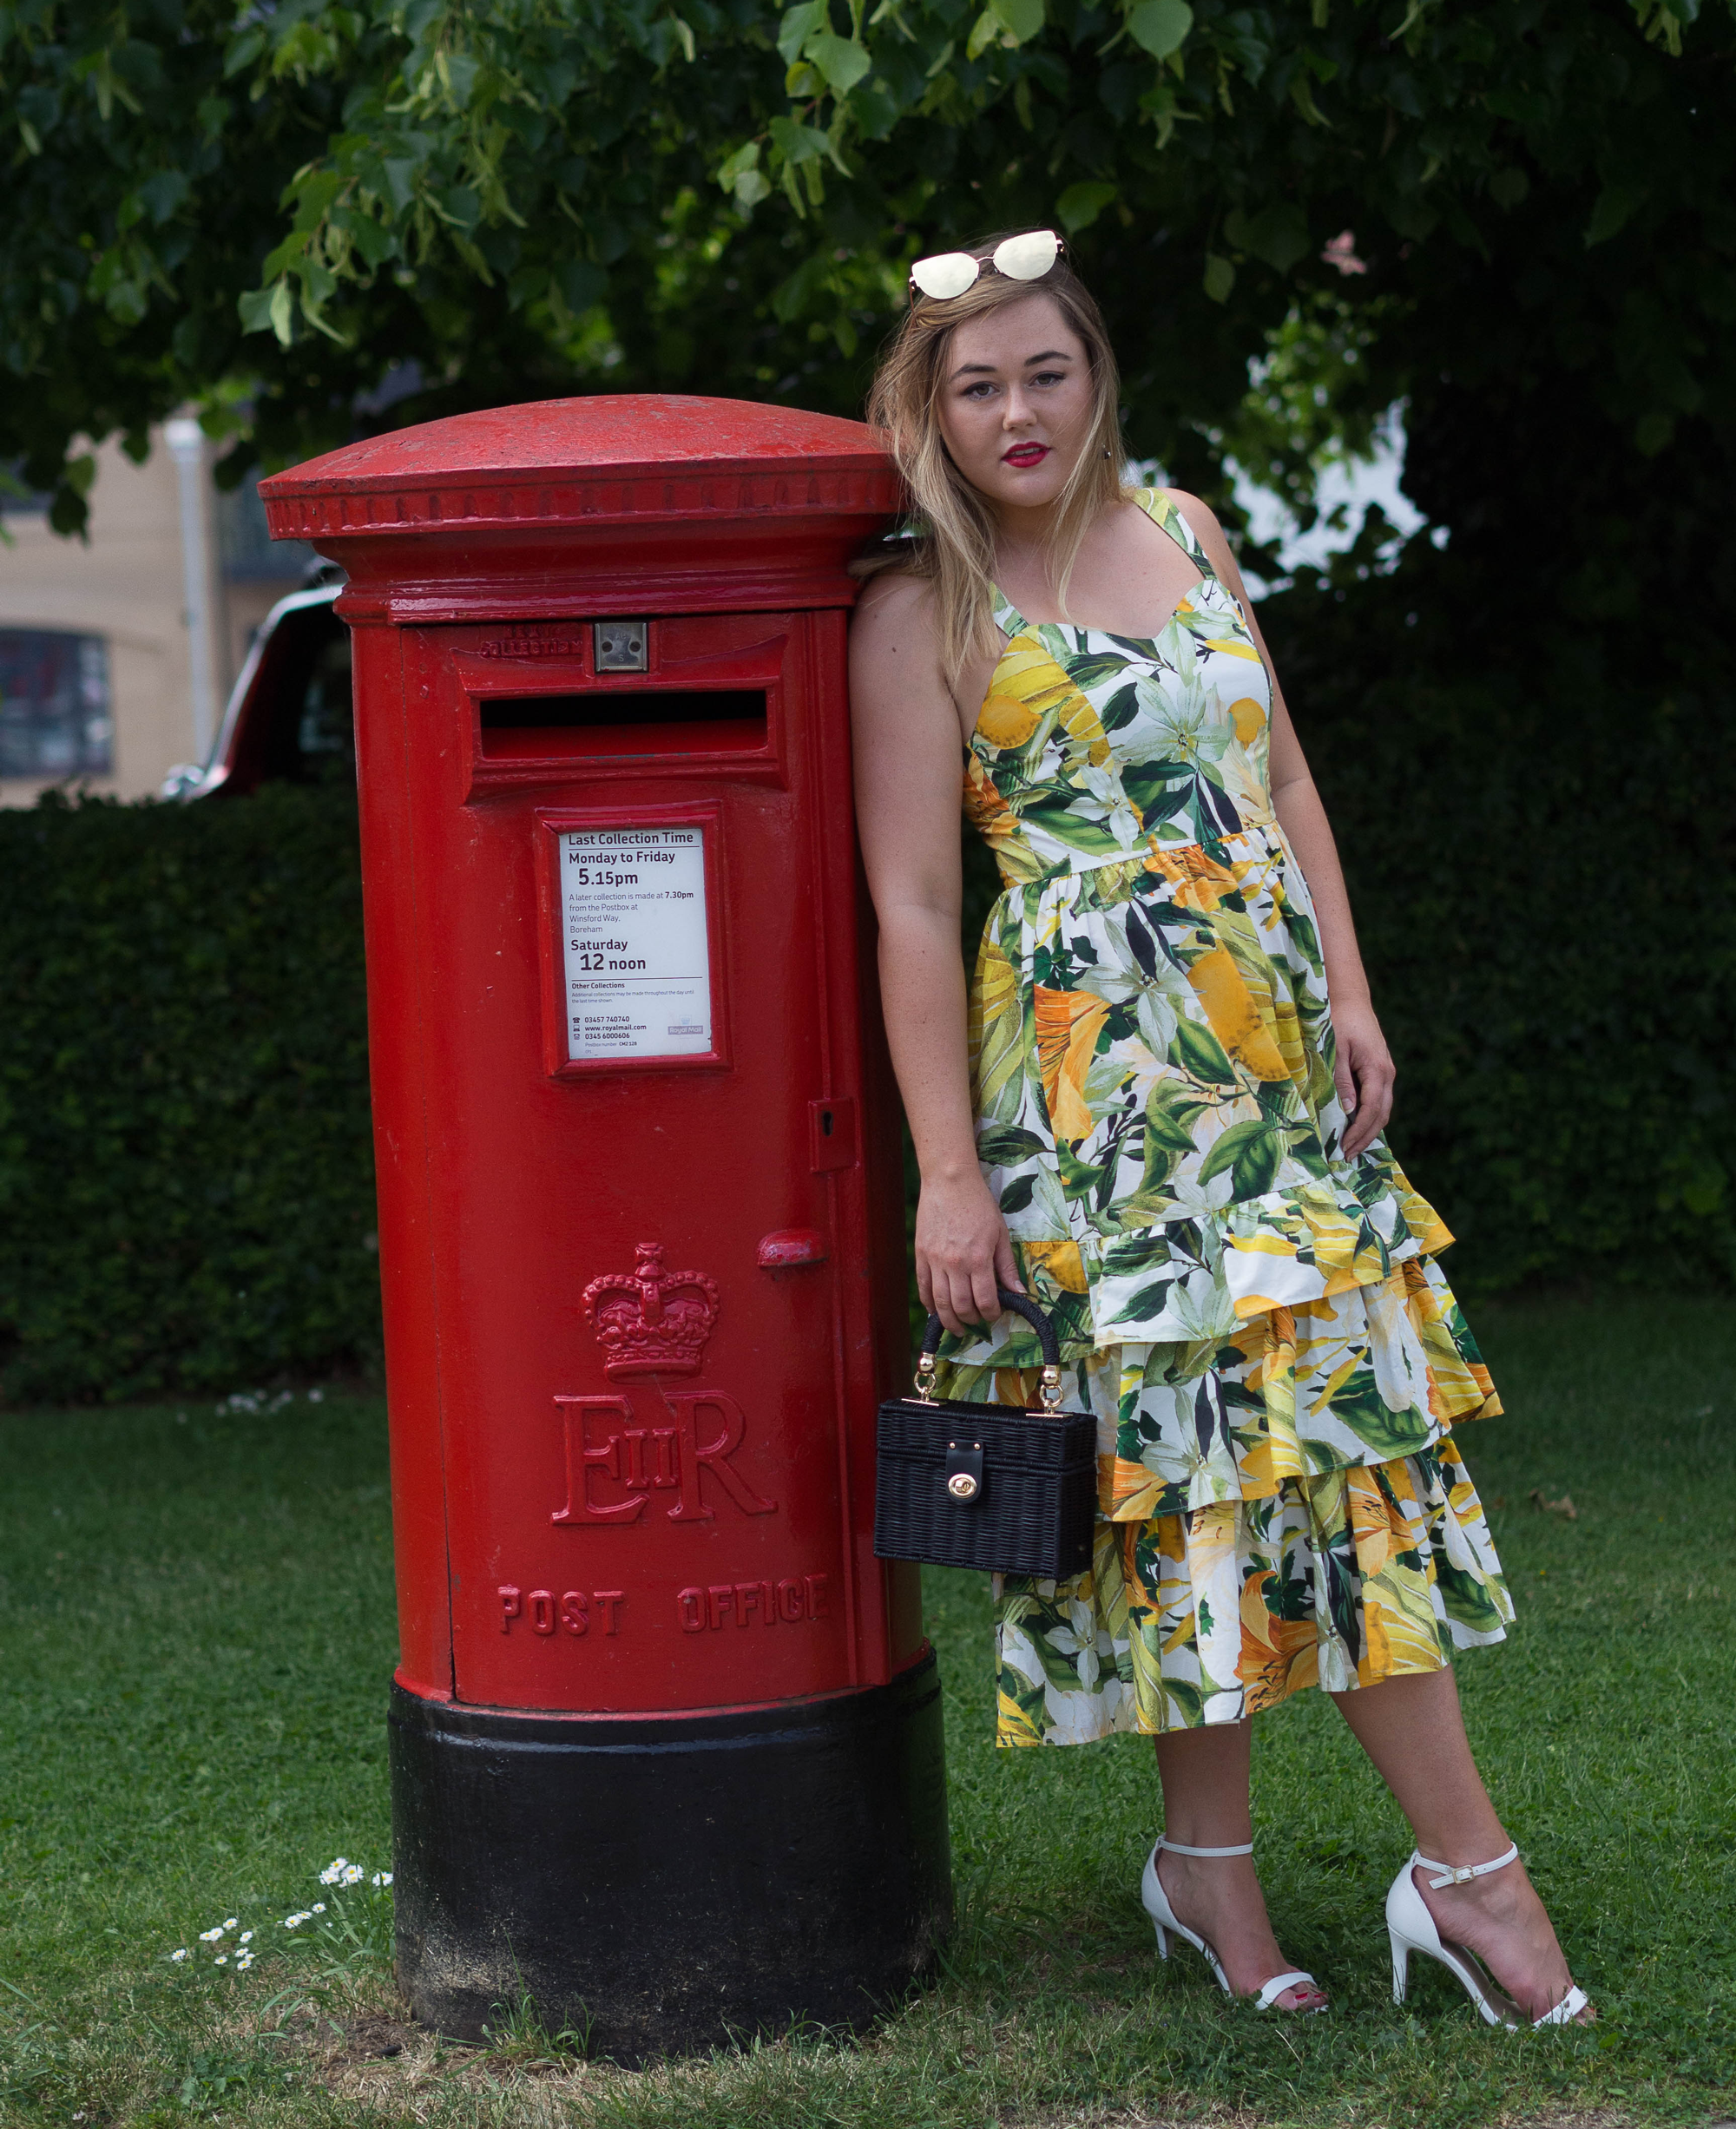 Hannah in yellow floral dress leaning on a red post box.